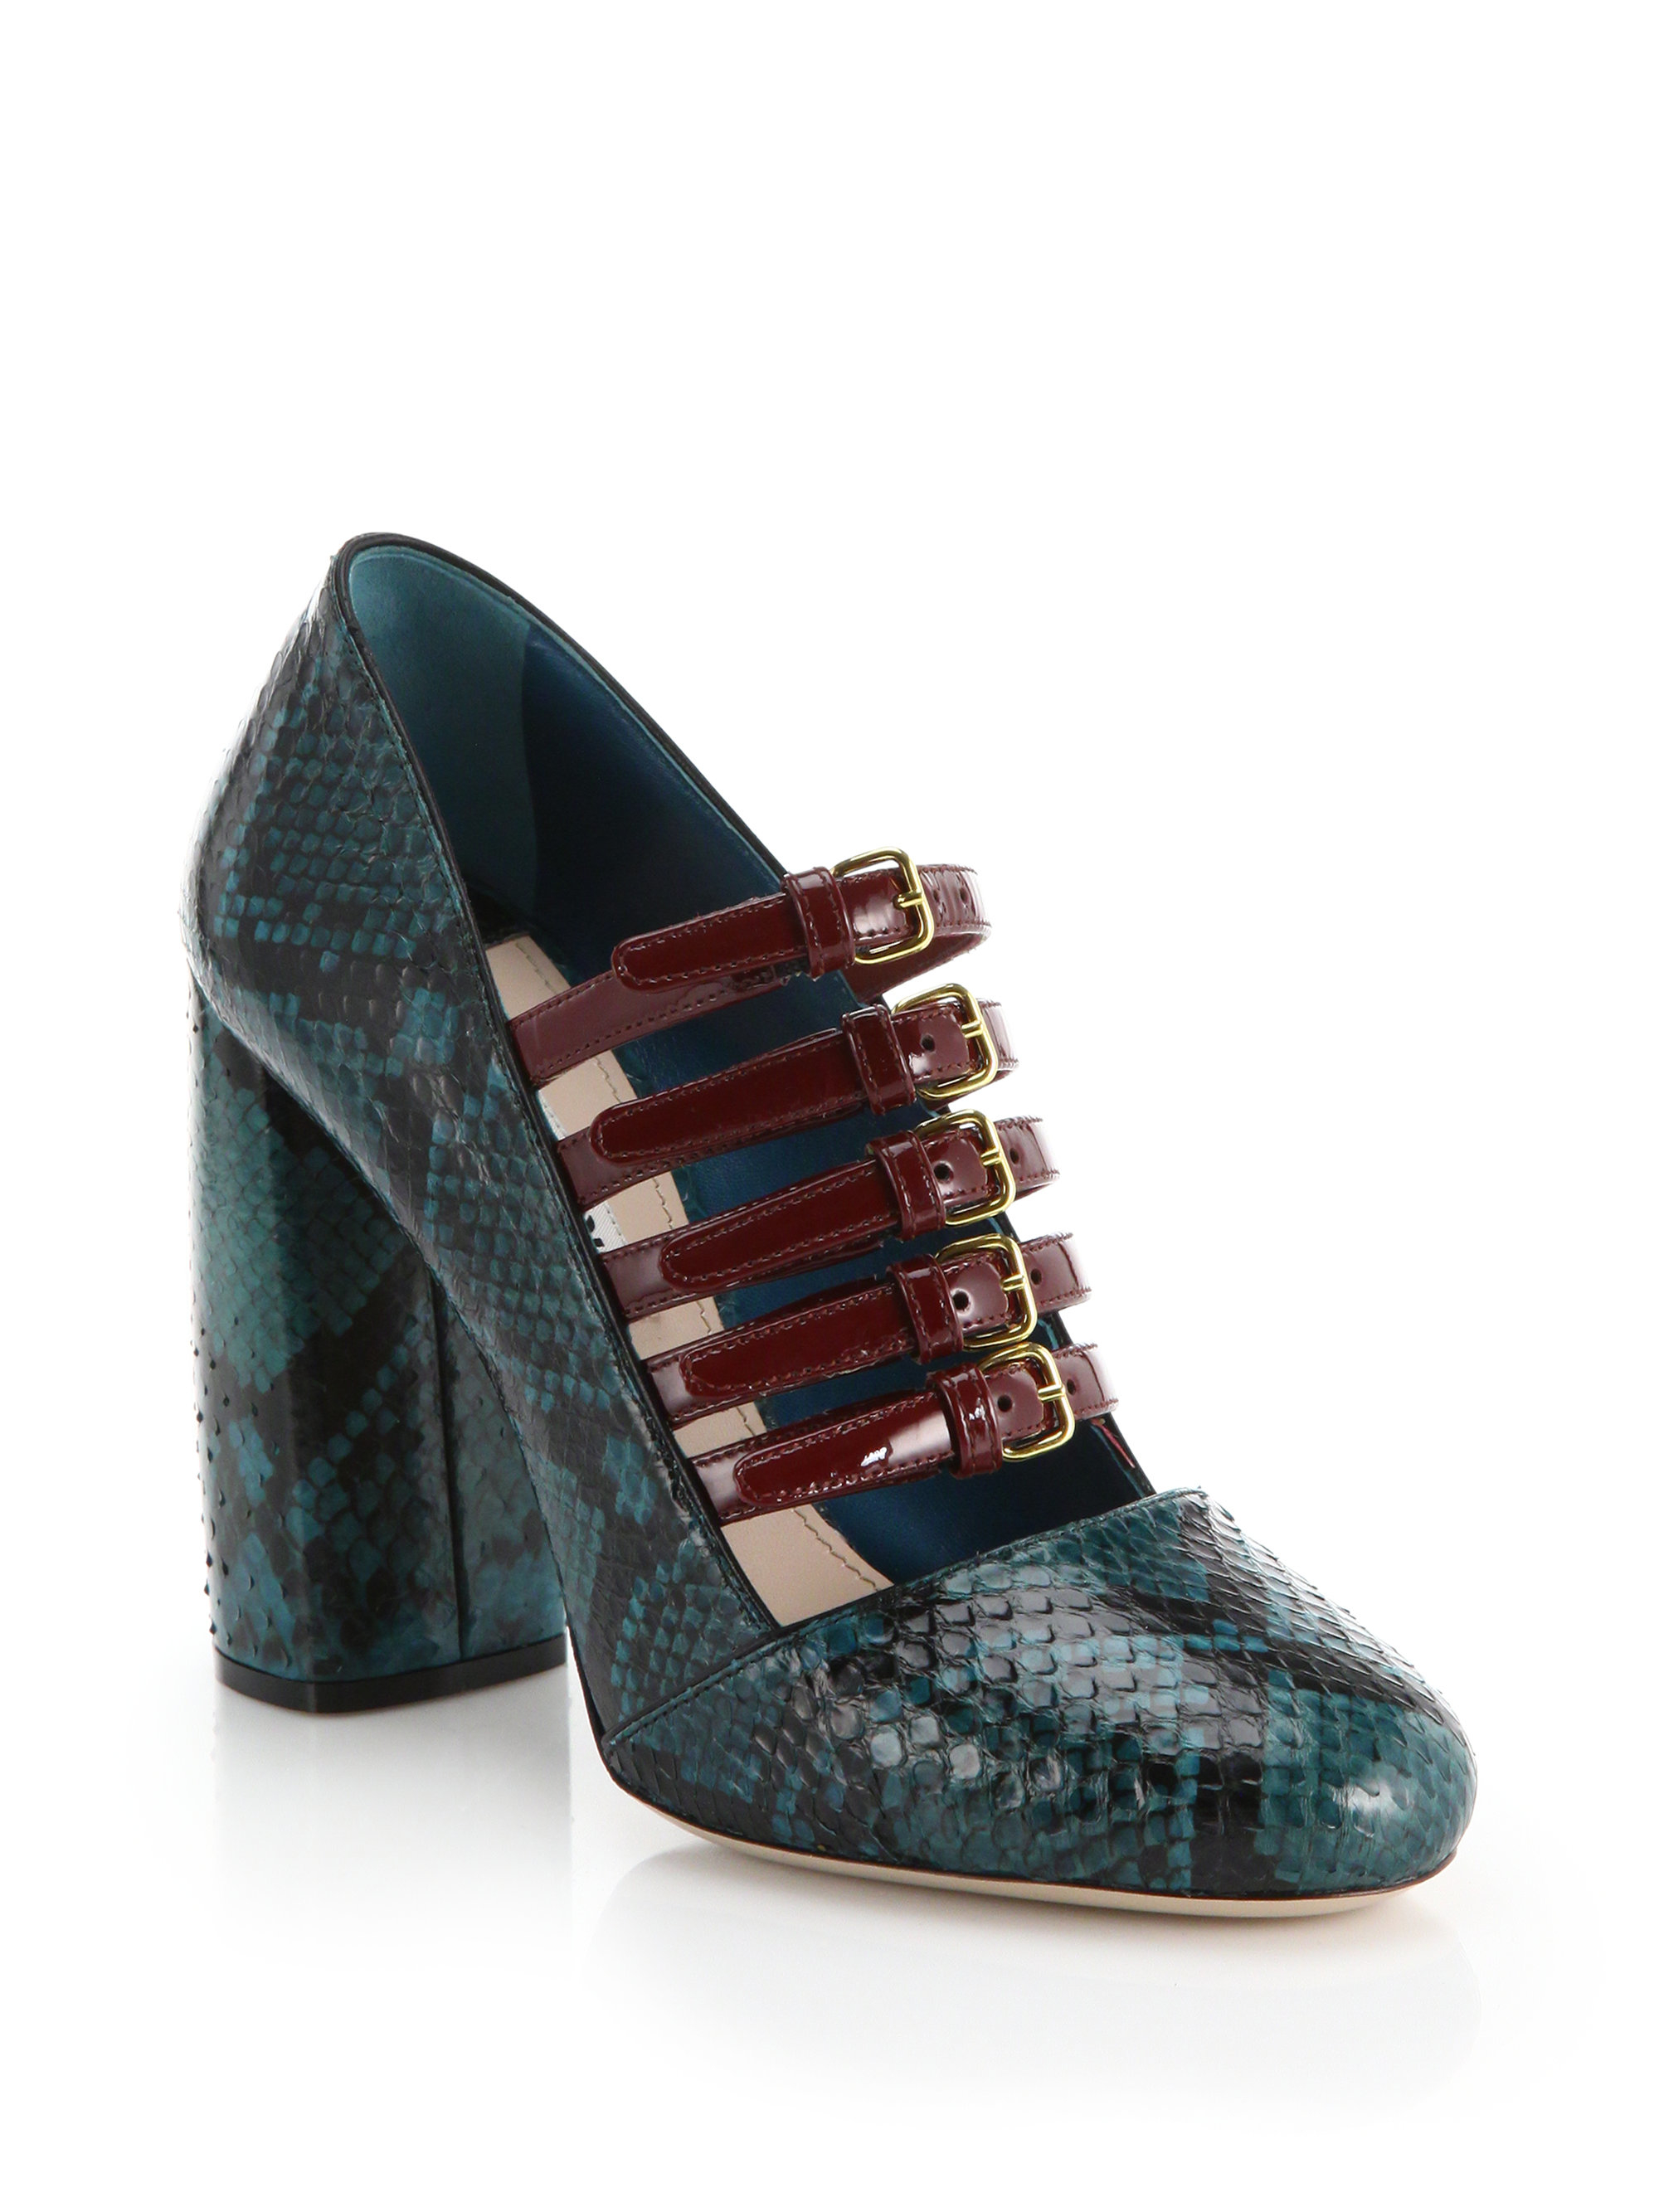 Miu miu Ayers Snakeskin & Patent Leather Mary Jane Pumps in Teal (teal-multi)   Lyst